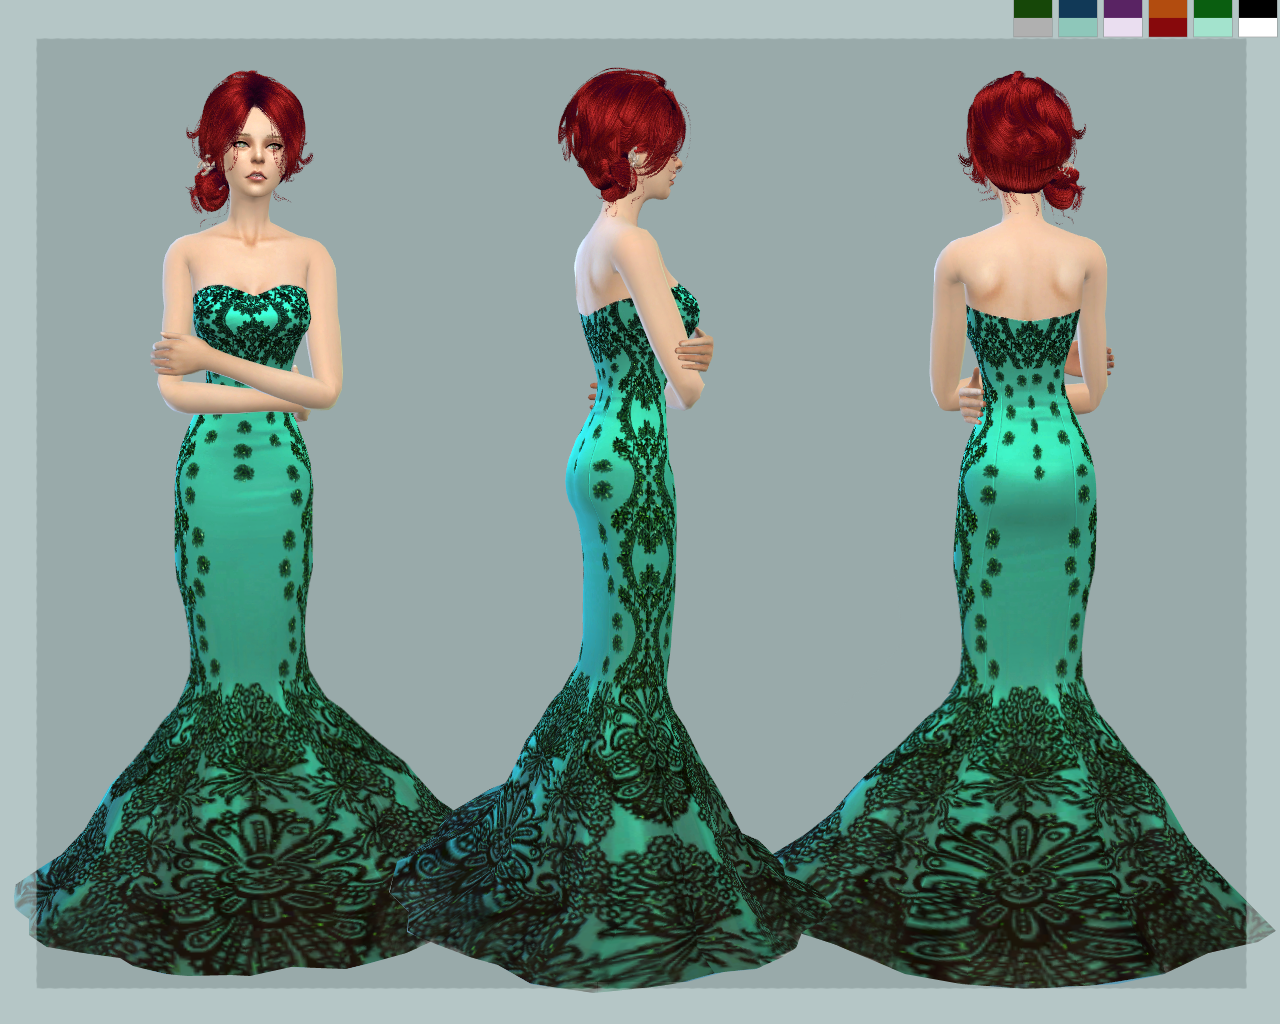 the sims 4 mermaid mod